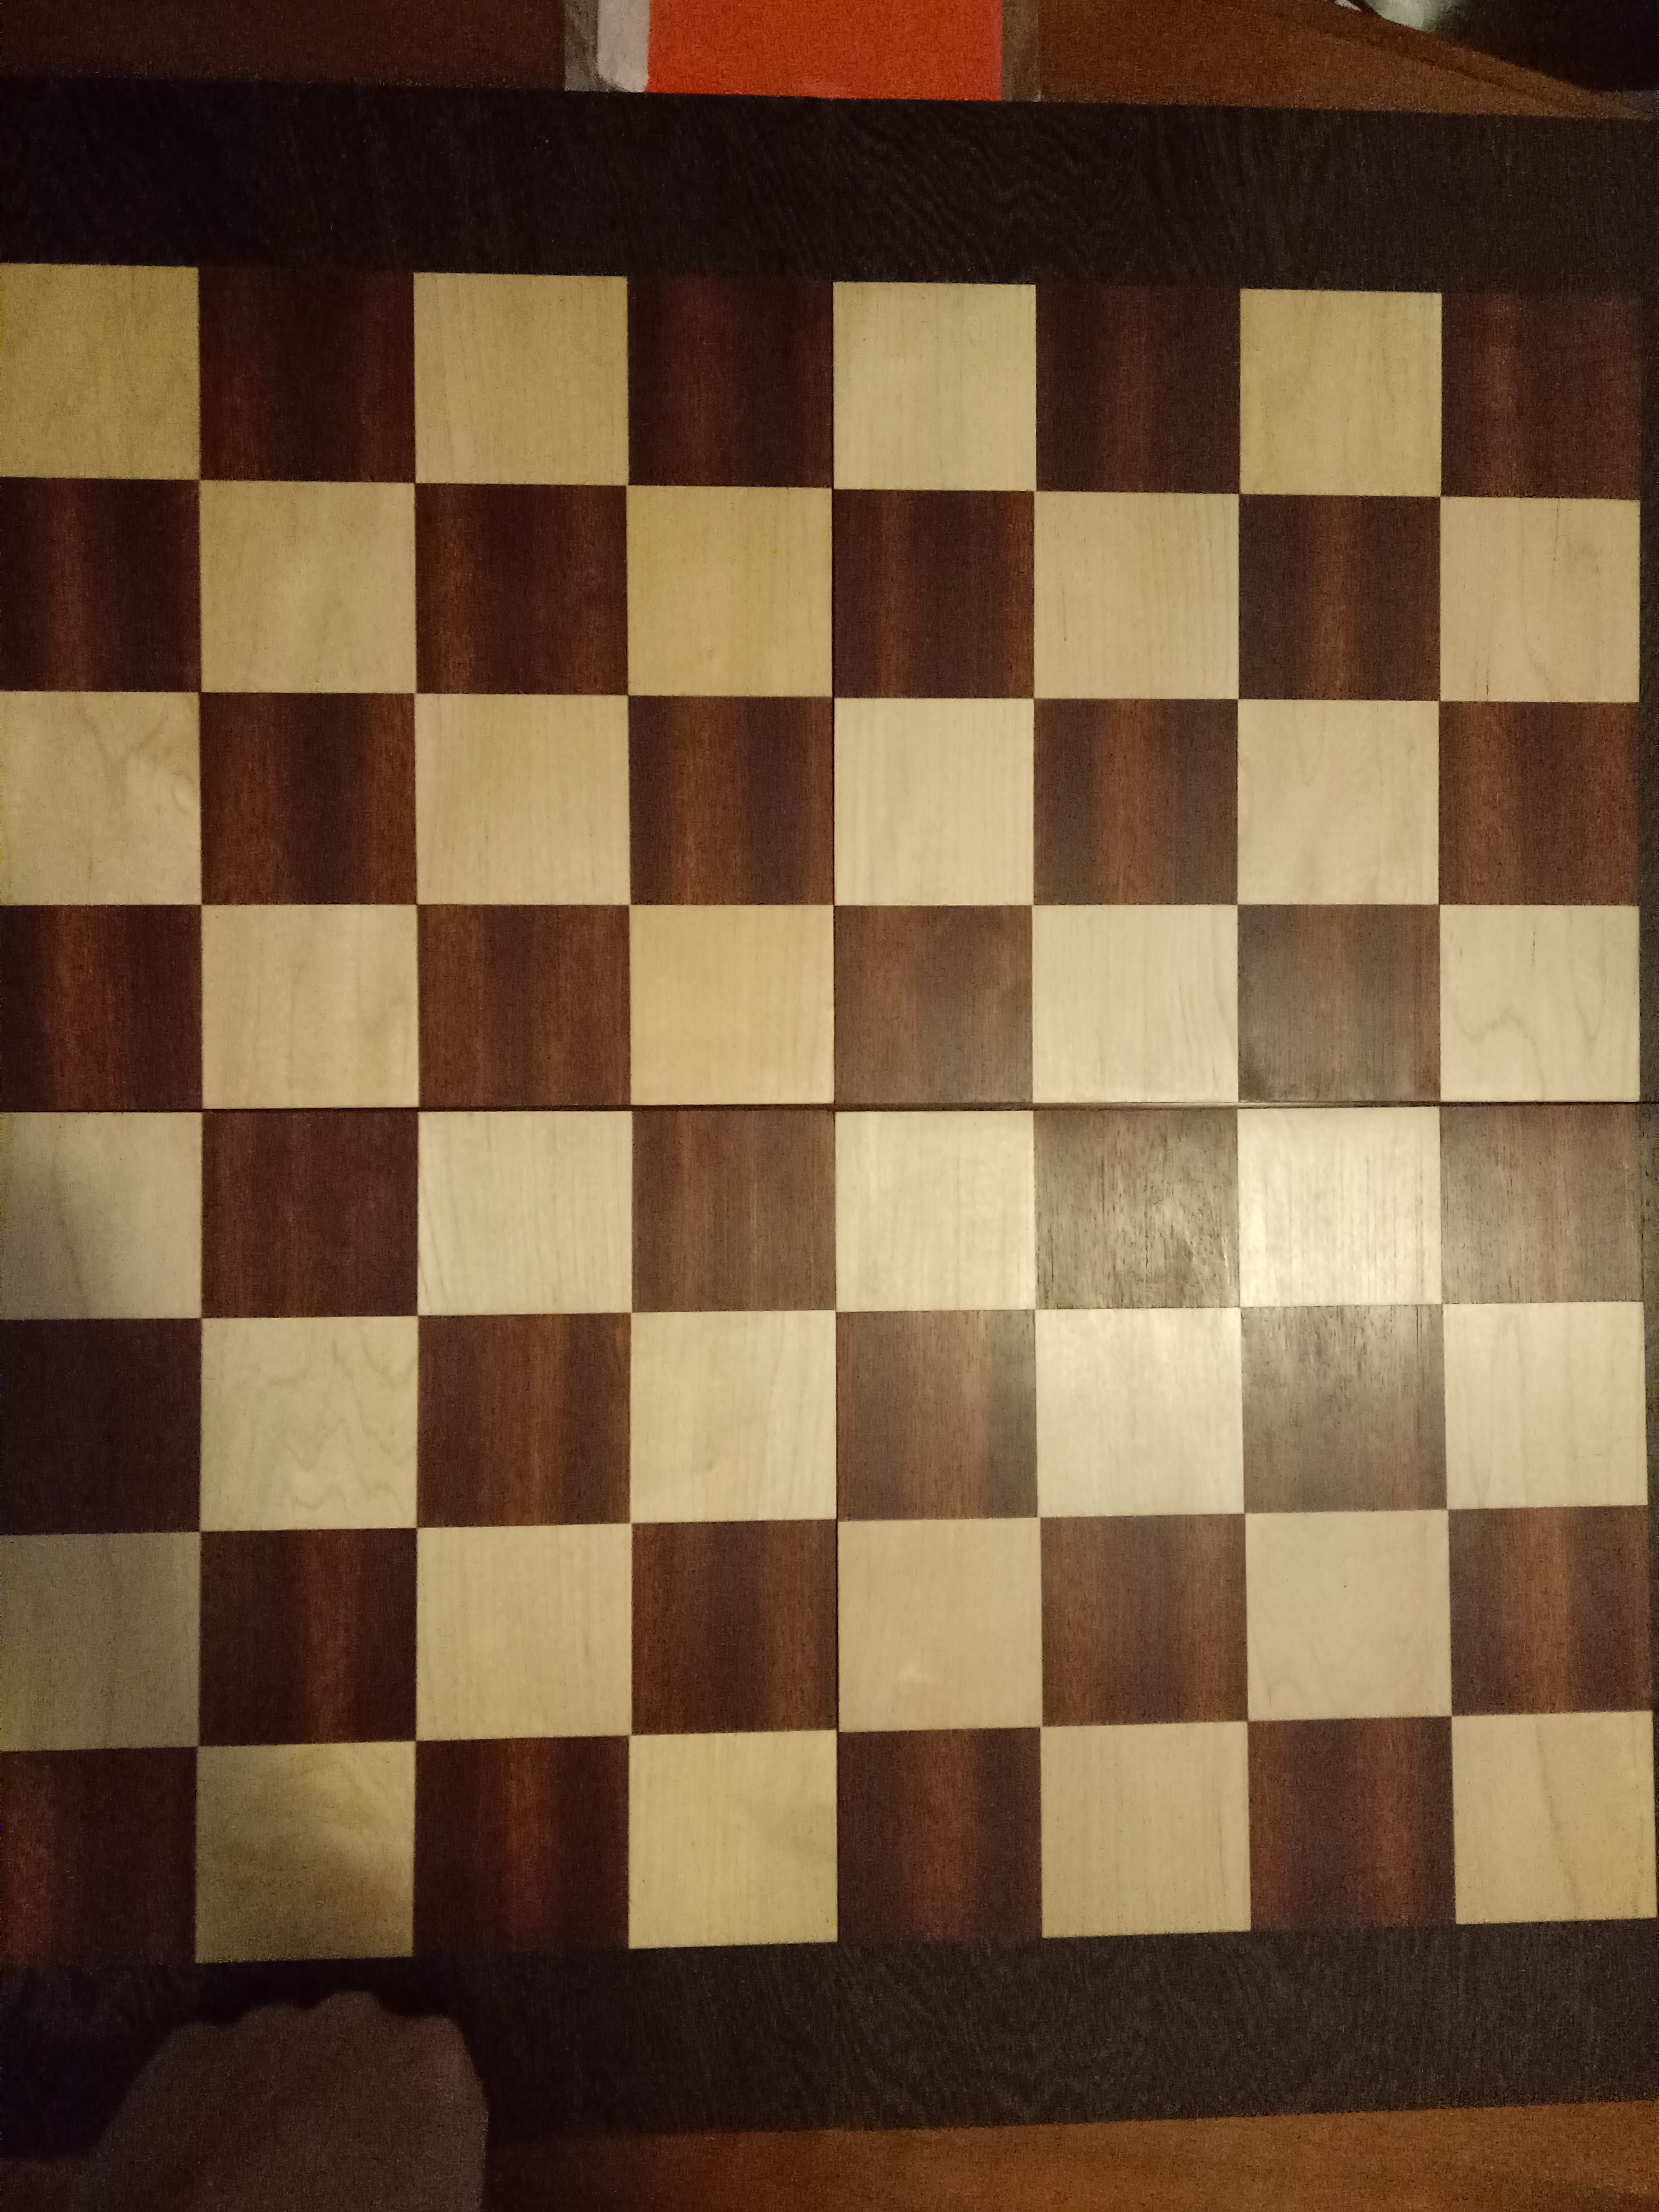 Fix For Warped Wood Chessboard Chess Forums Chess Com